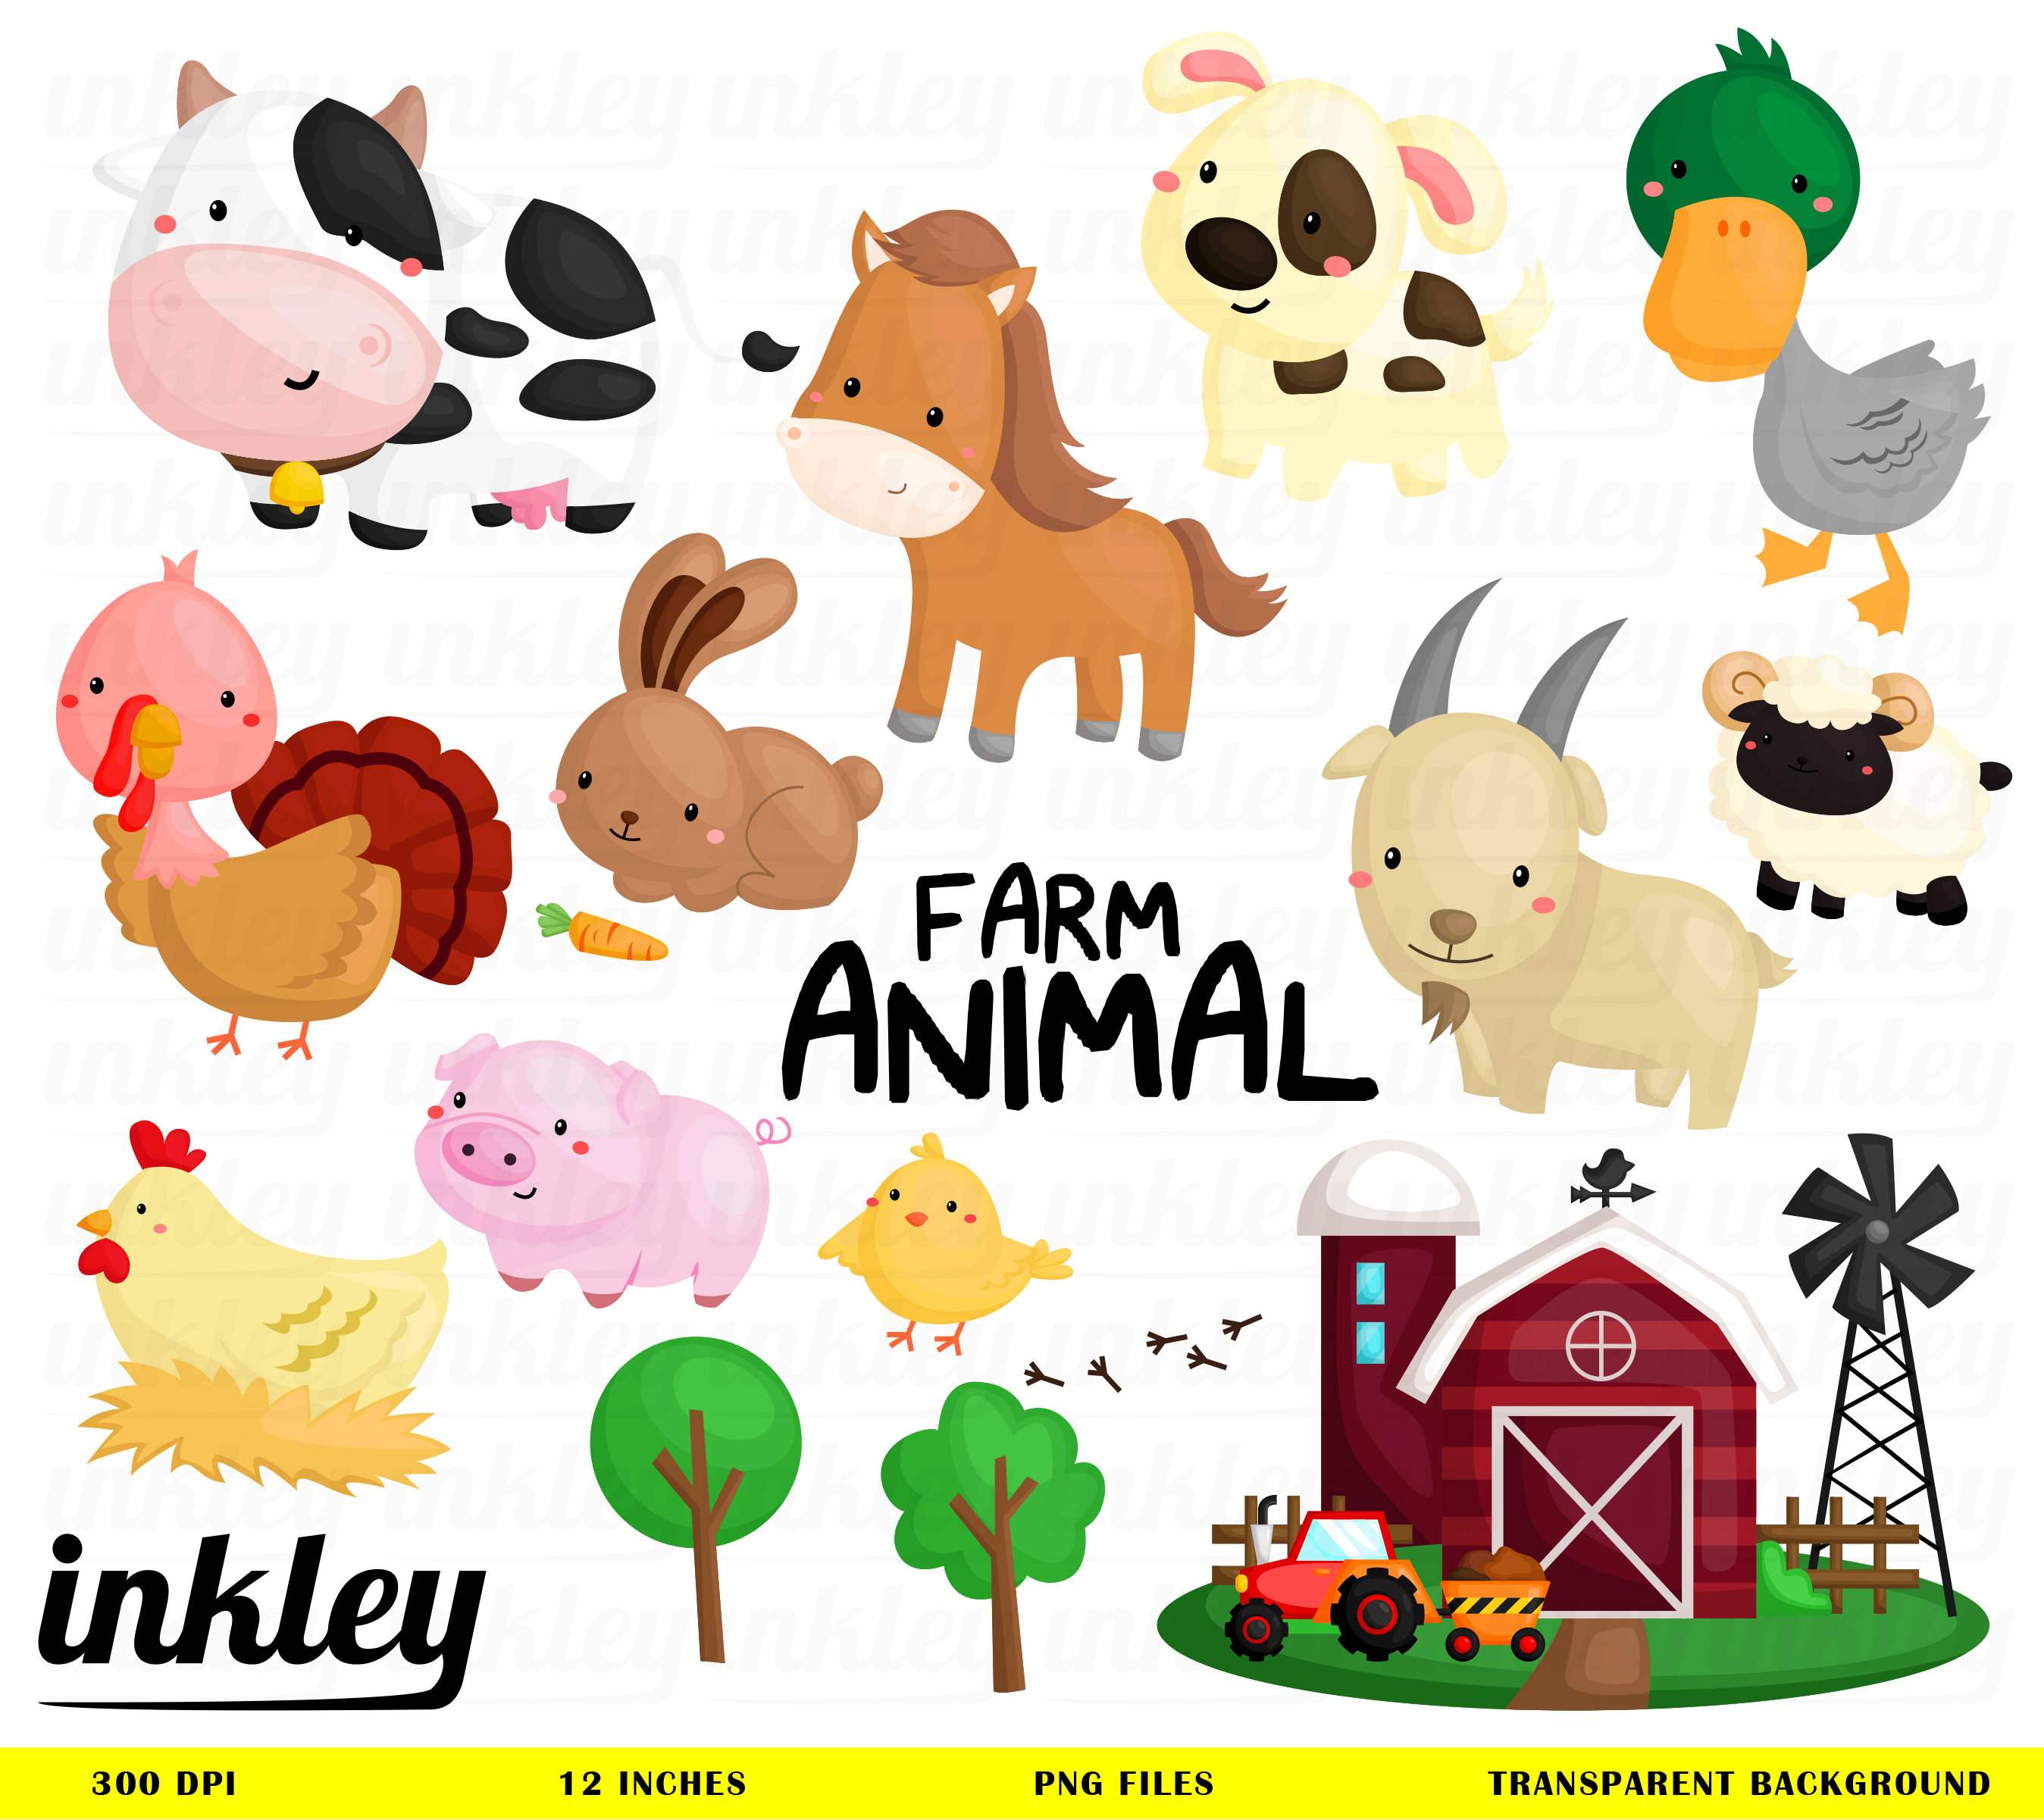 farm animal clipart farm animal clip art farm animal png rh etsy com farm animals clipart sheep clipart farm animals black and white